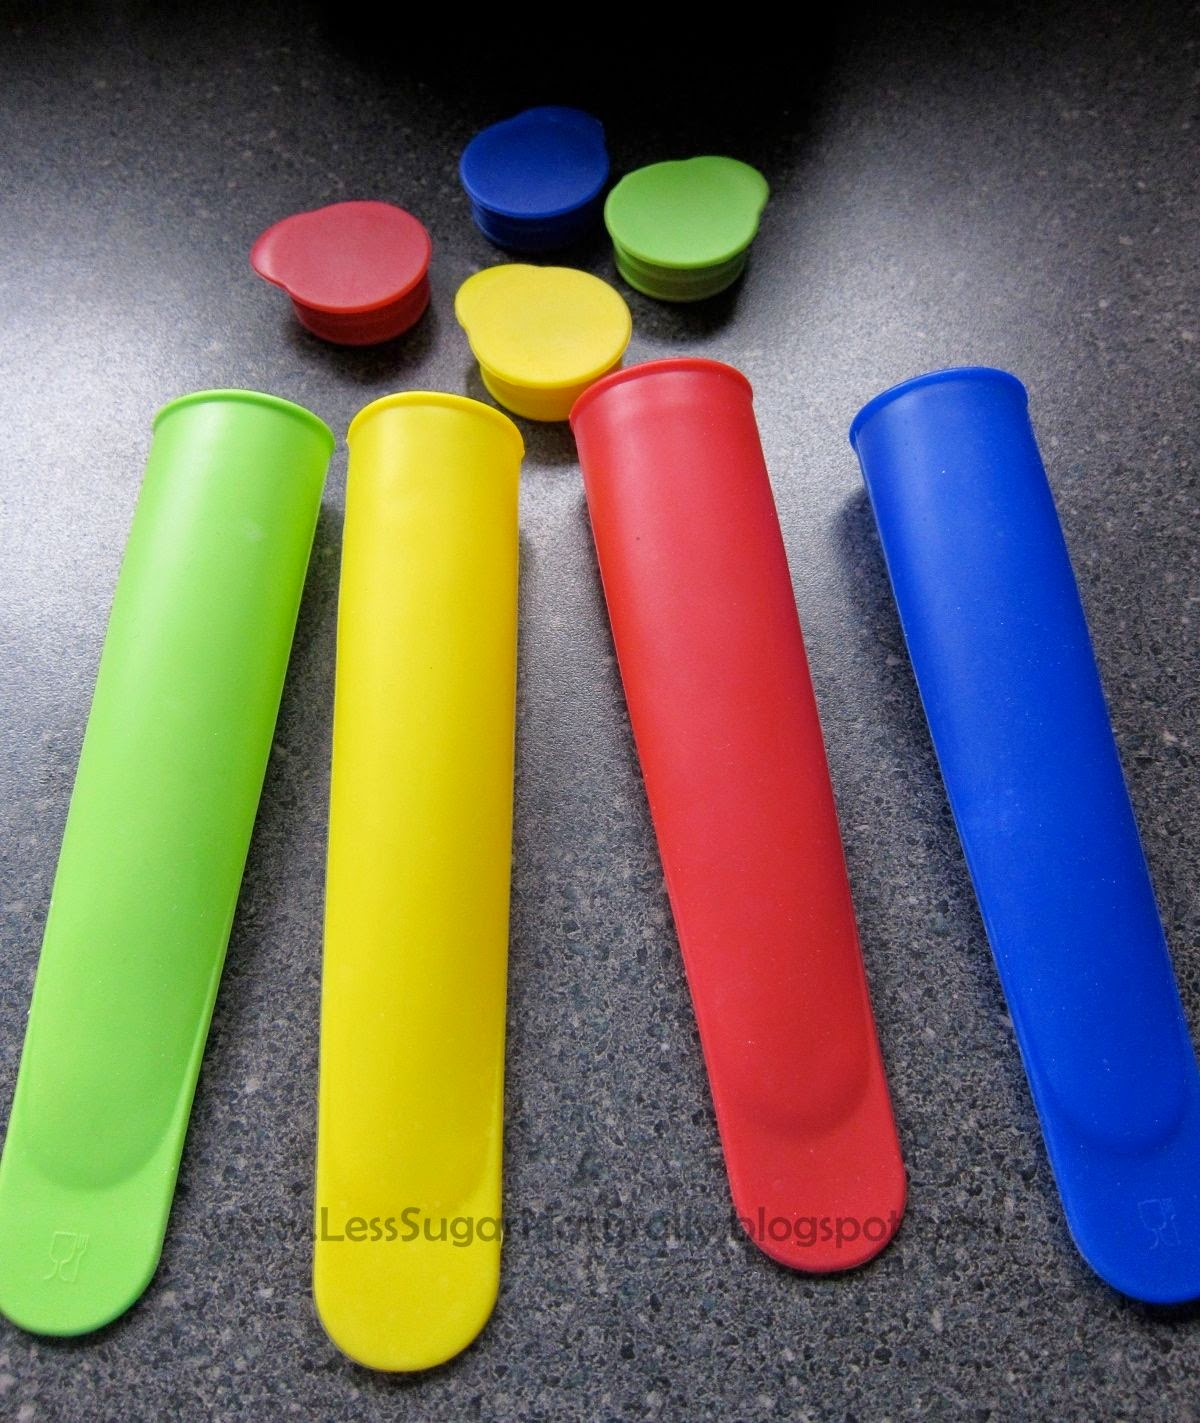 Low-sugar silicone popscicle molds